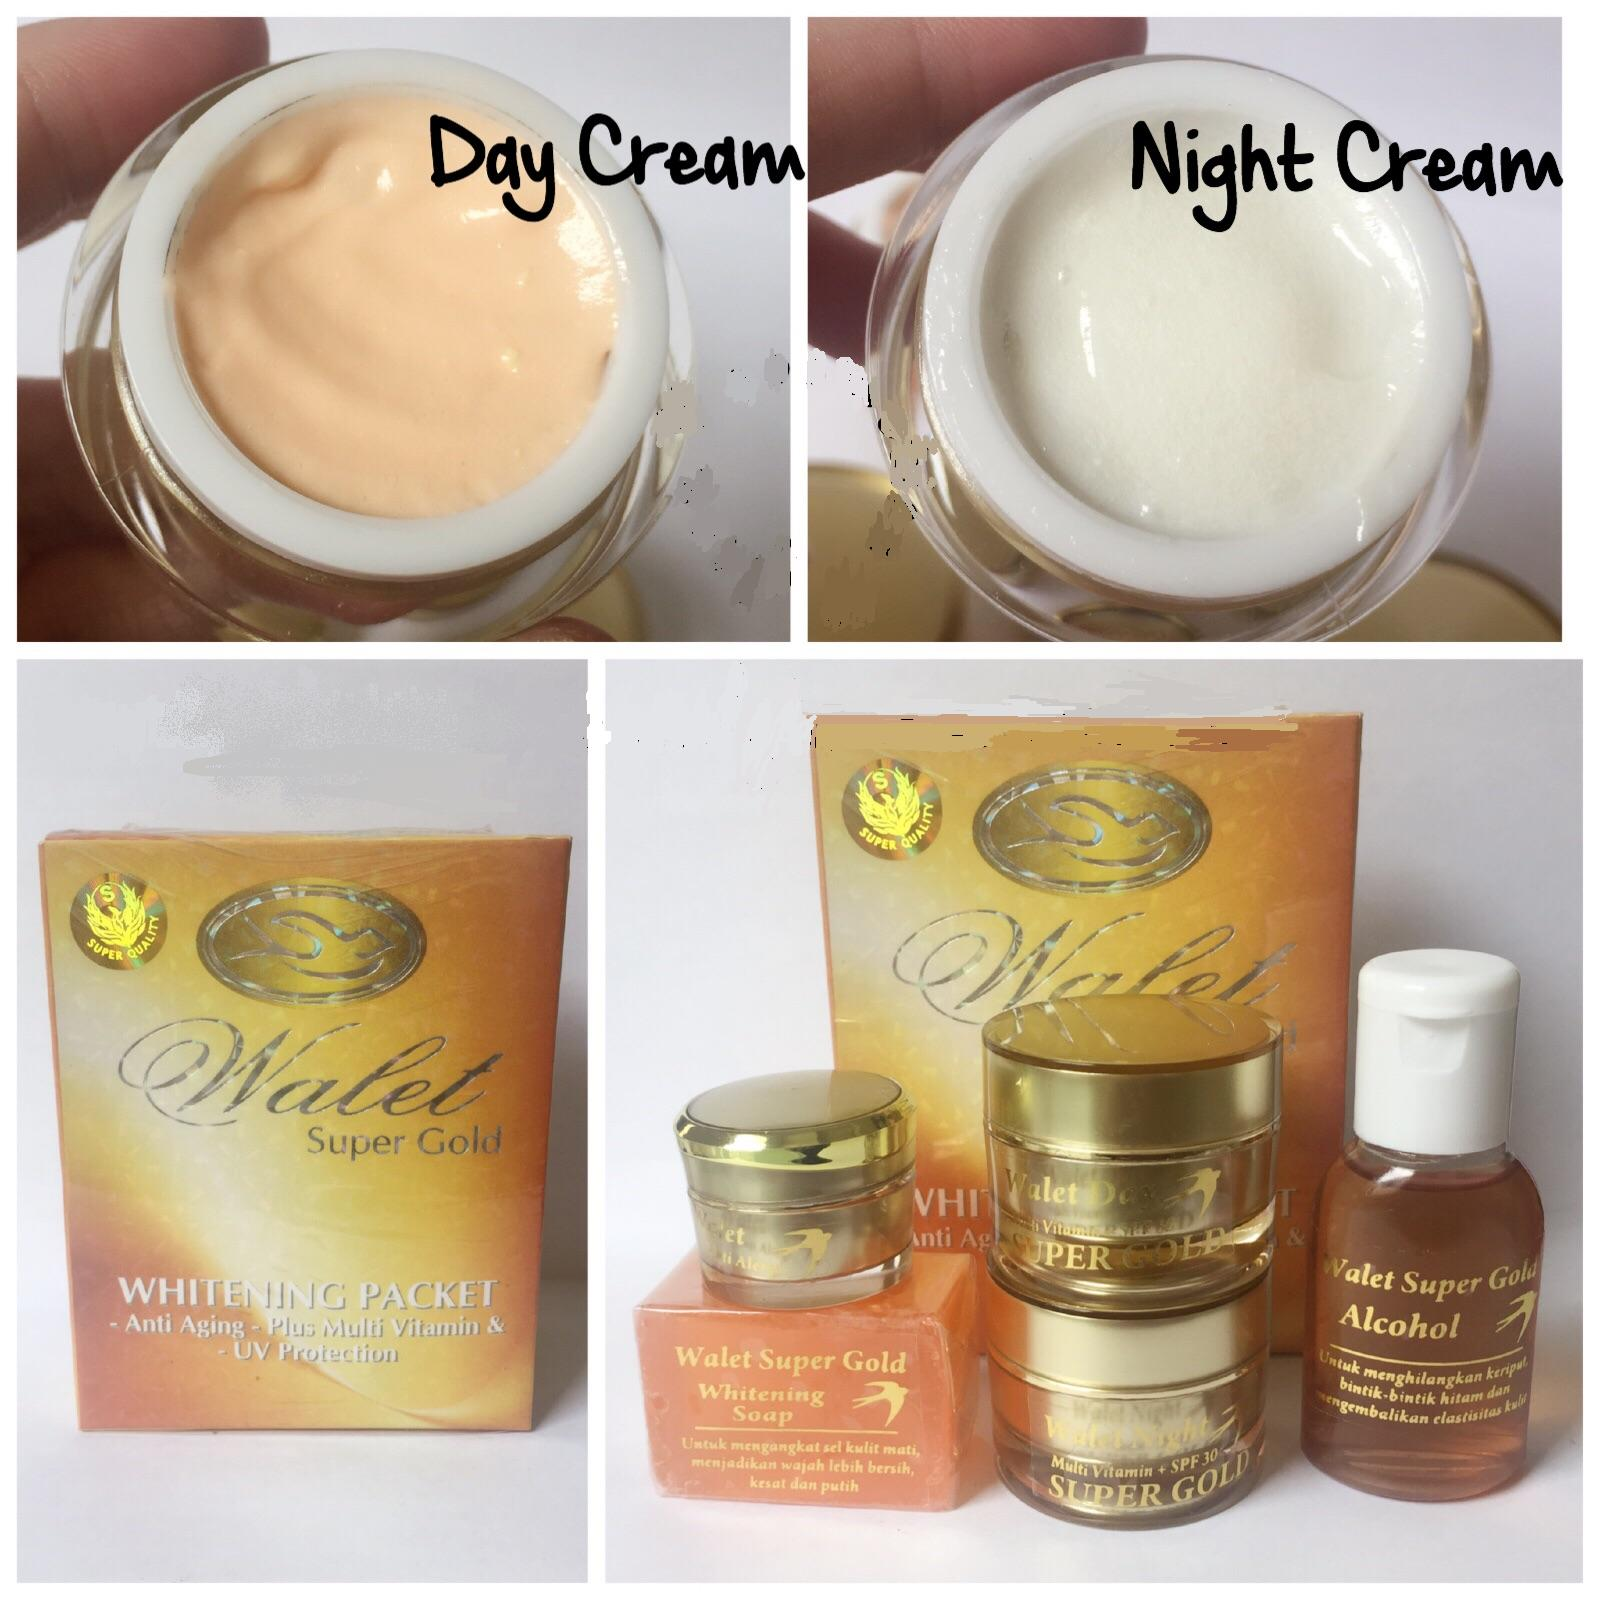 ... Cream Walet Super Gold White Original